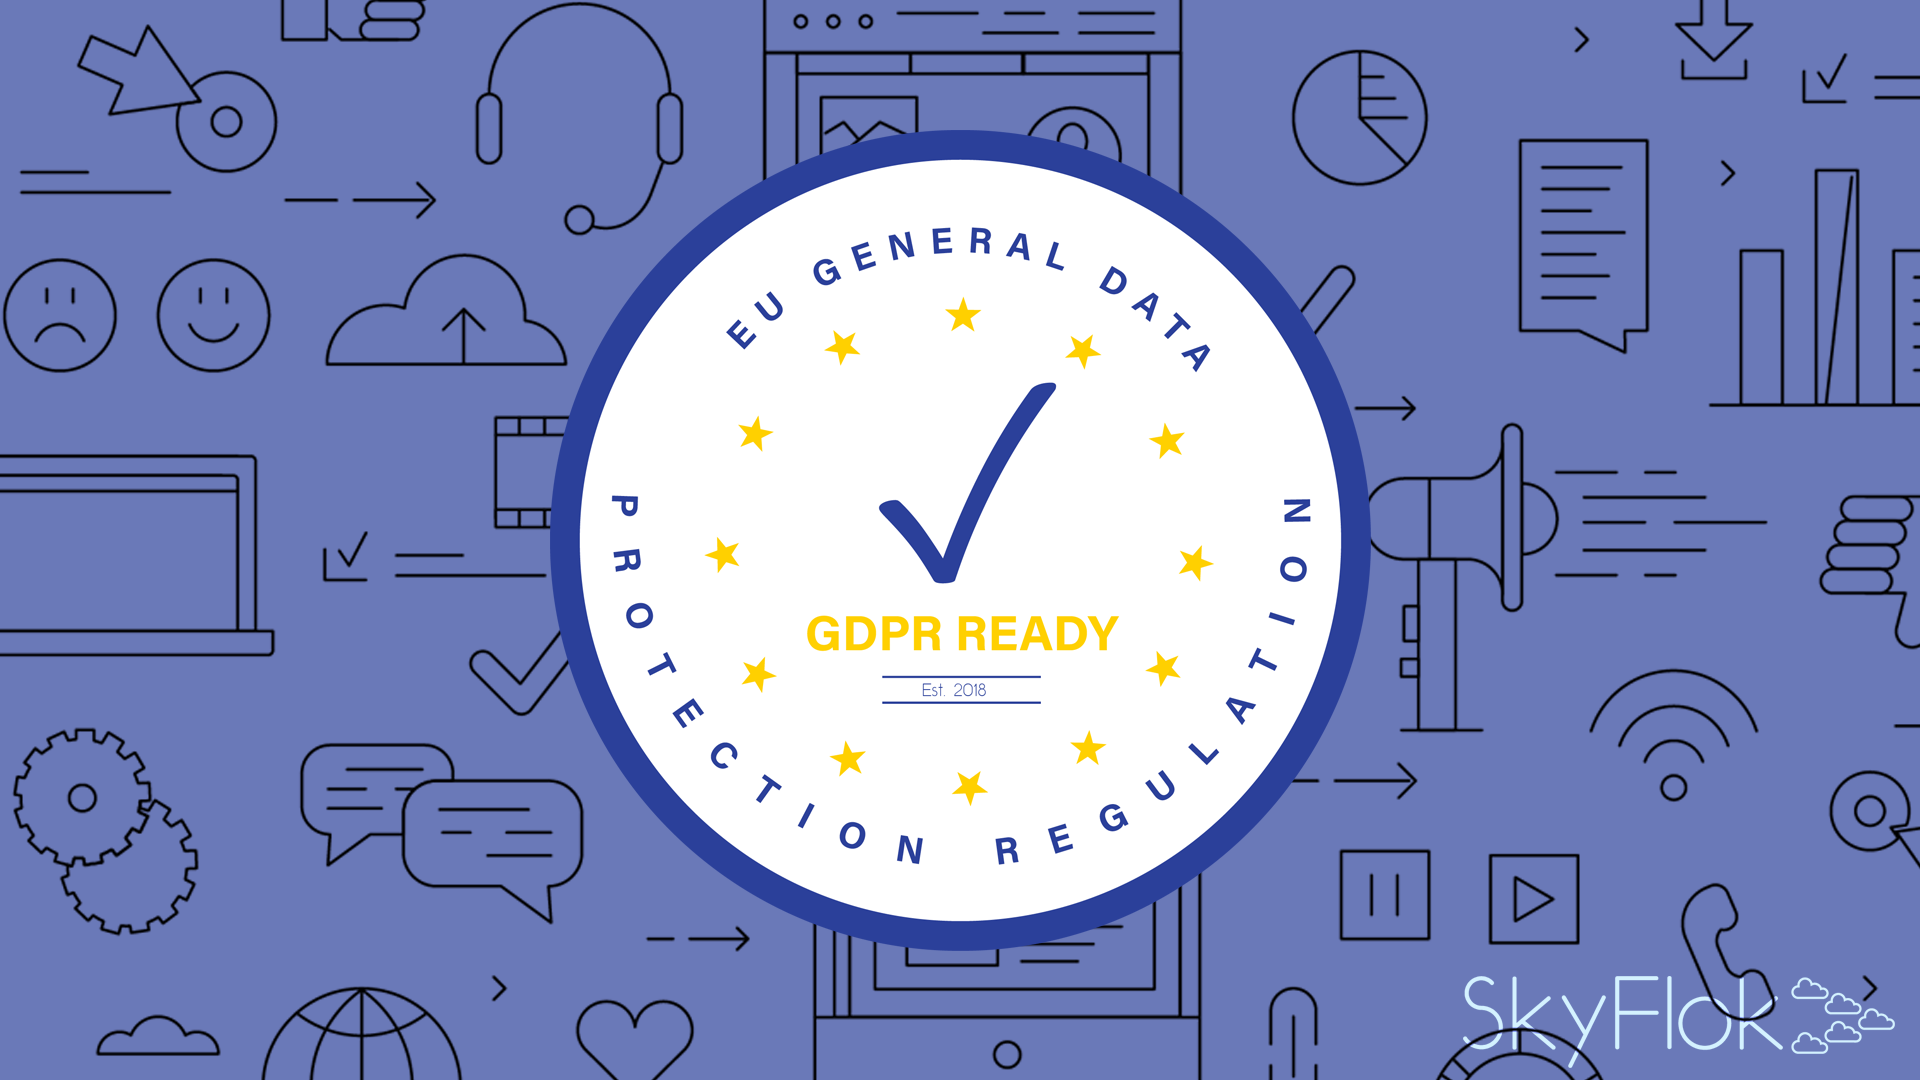 GDPR IT Readiness and SD-WANs